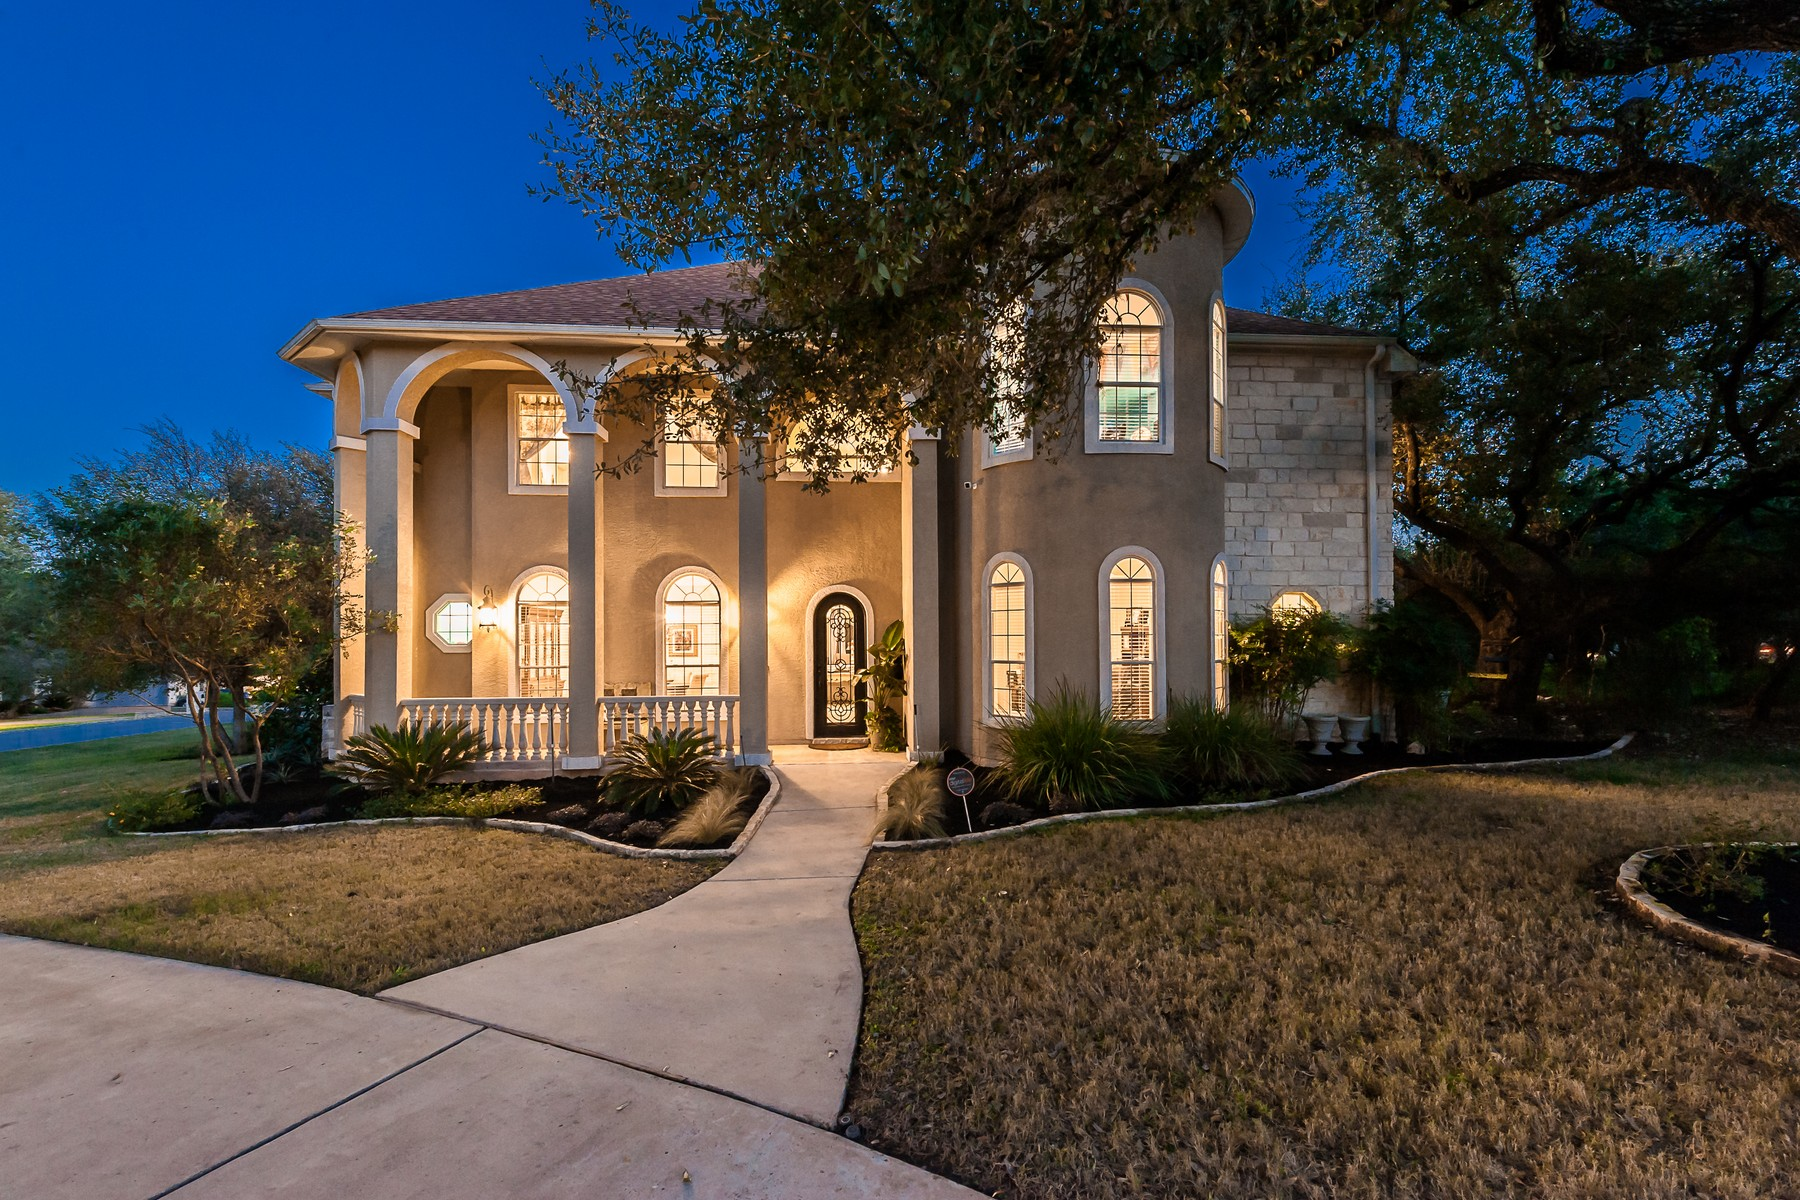 Single Family Home for Sale at Abundant Living in Lakeway 926 Vanguard St Lakeway, Texas, 78734 United States